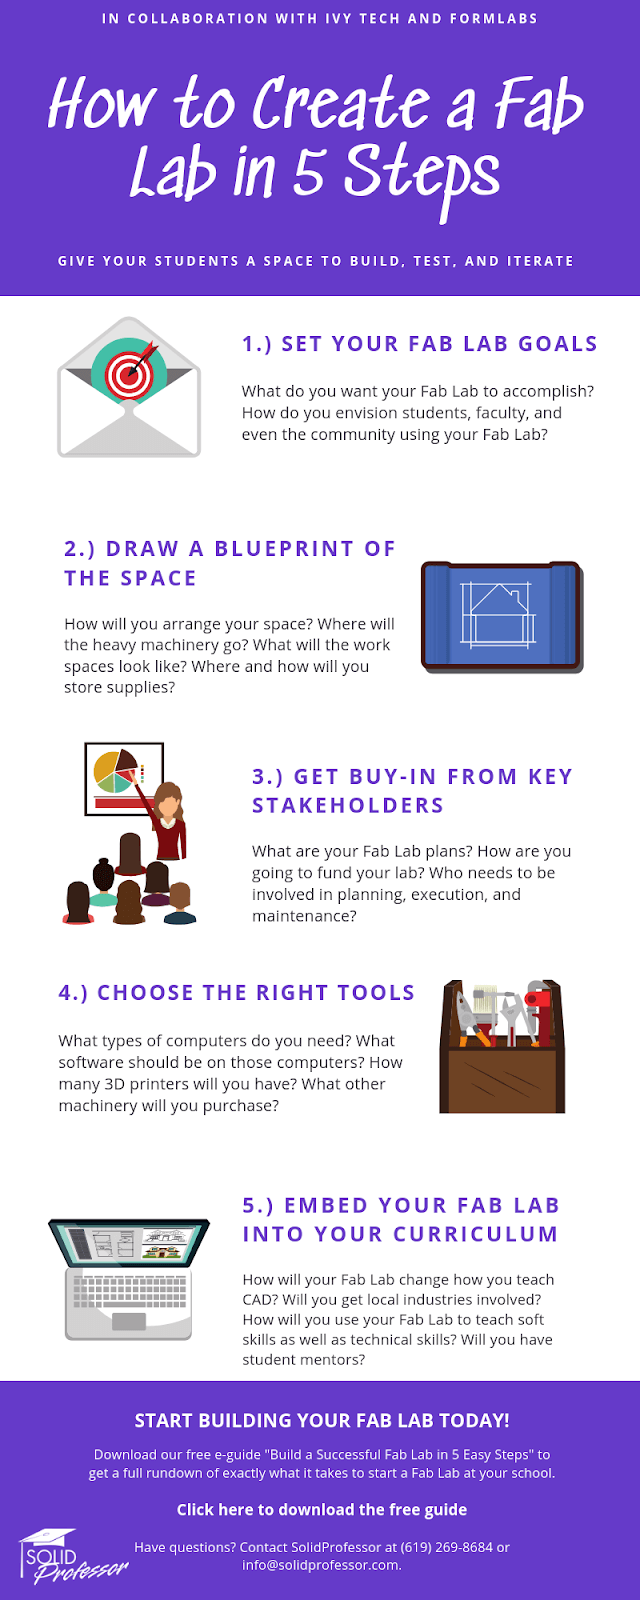 How to build a Fab Lab infographic